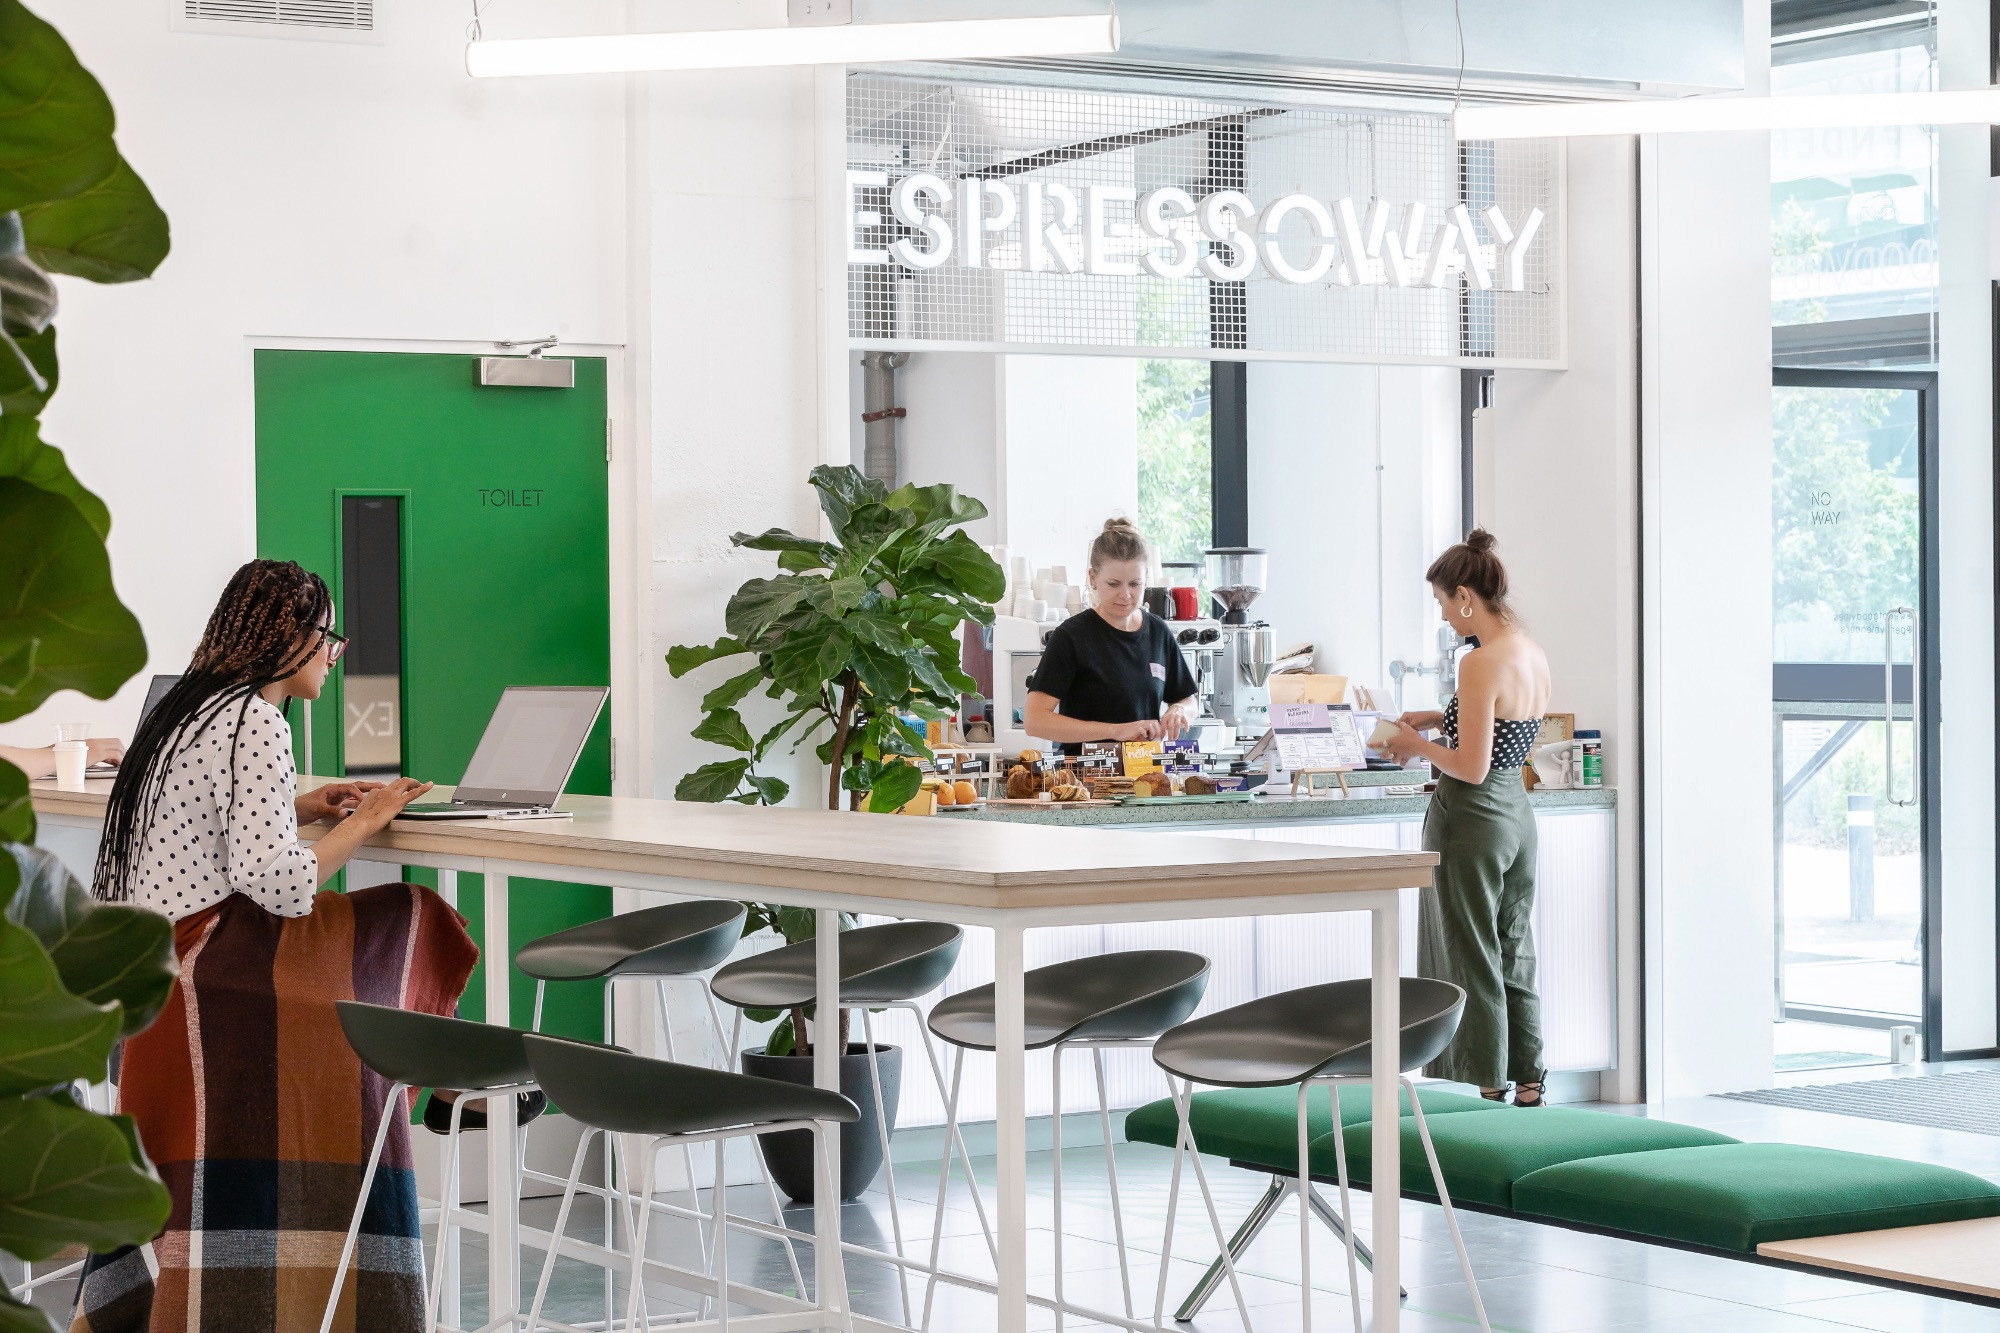 The Expressway's well-lit entrance, with cafe and tables to work at